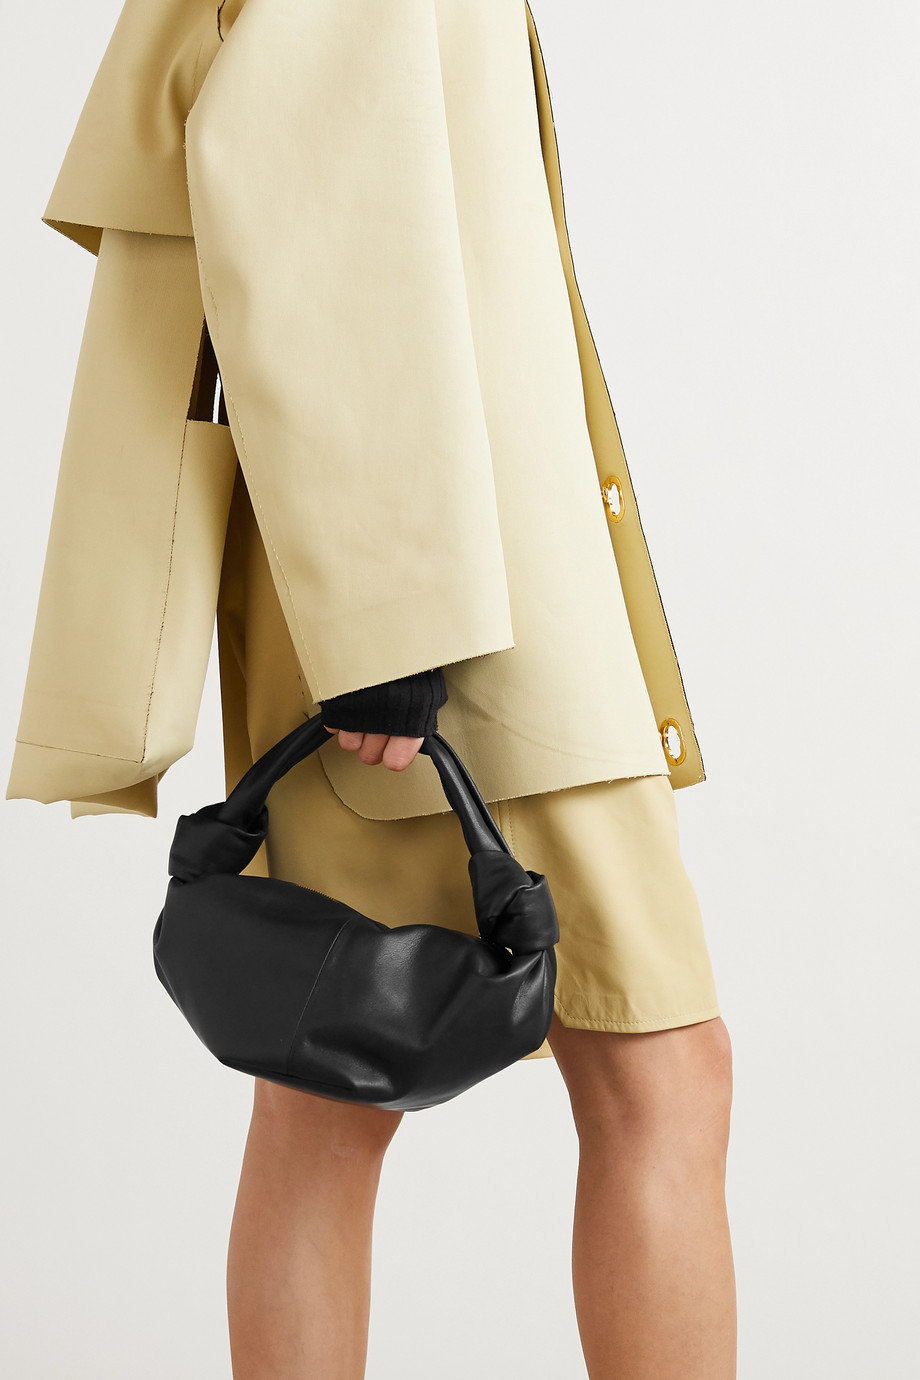 Bottega Veneta Mini knotted leather tote